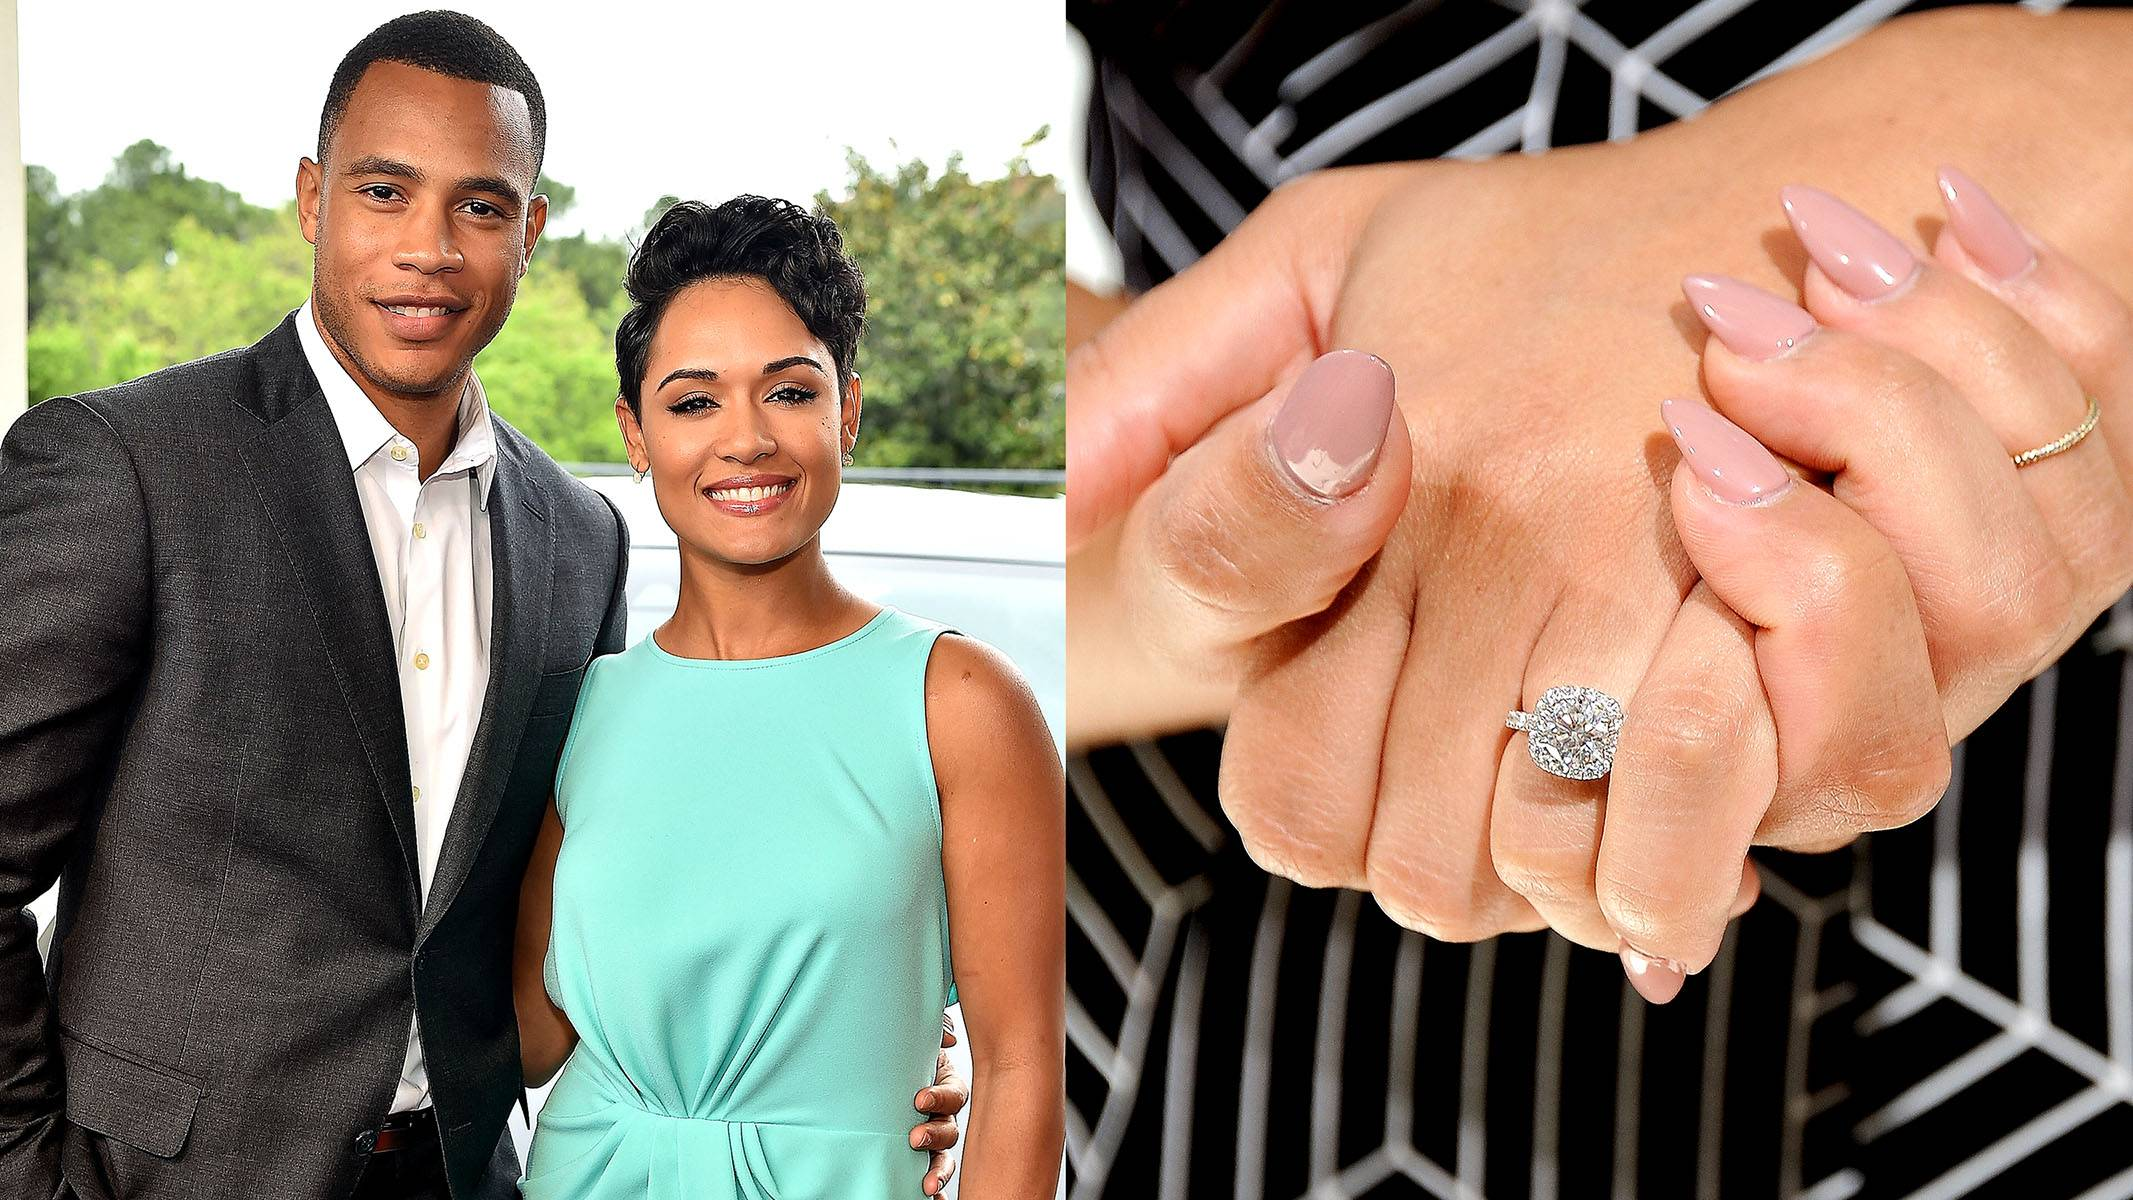 Grace Gealey - Empire's Trai Byers and Grace Gealey's engagement has been under wraps for a minute. But we've caught glimpses of Ms. Boo Boo Kitty's brilliant square-cut diamond on the red carpet, and she finally went public with the news on a recent episode of FABLife. You did good, Trai!(Photos from Left: Paras Griffin/Getty Images, D Dipasupil/Getty Images for Extra)